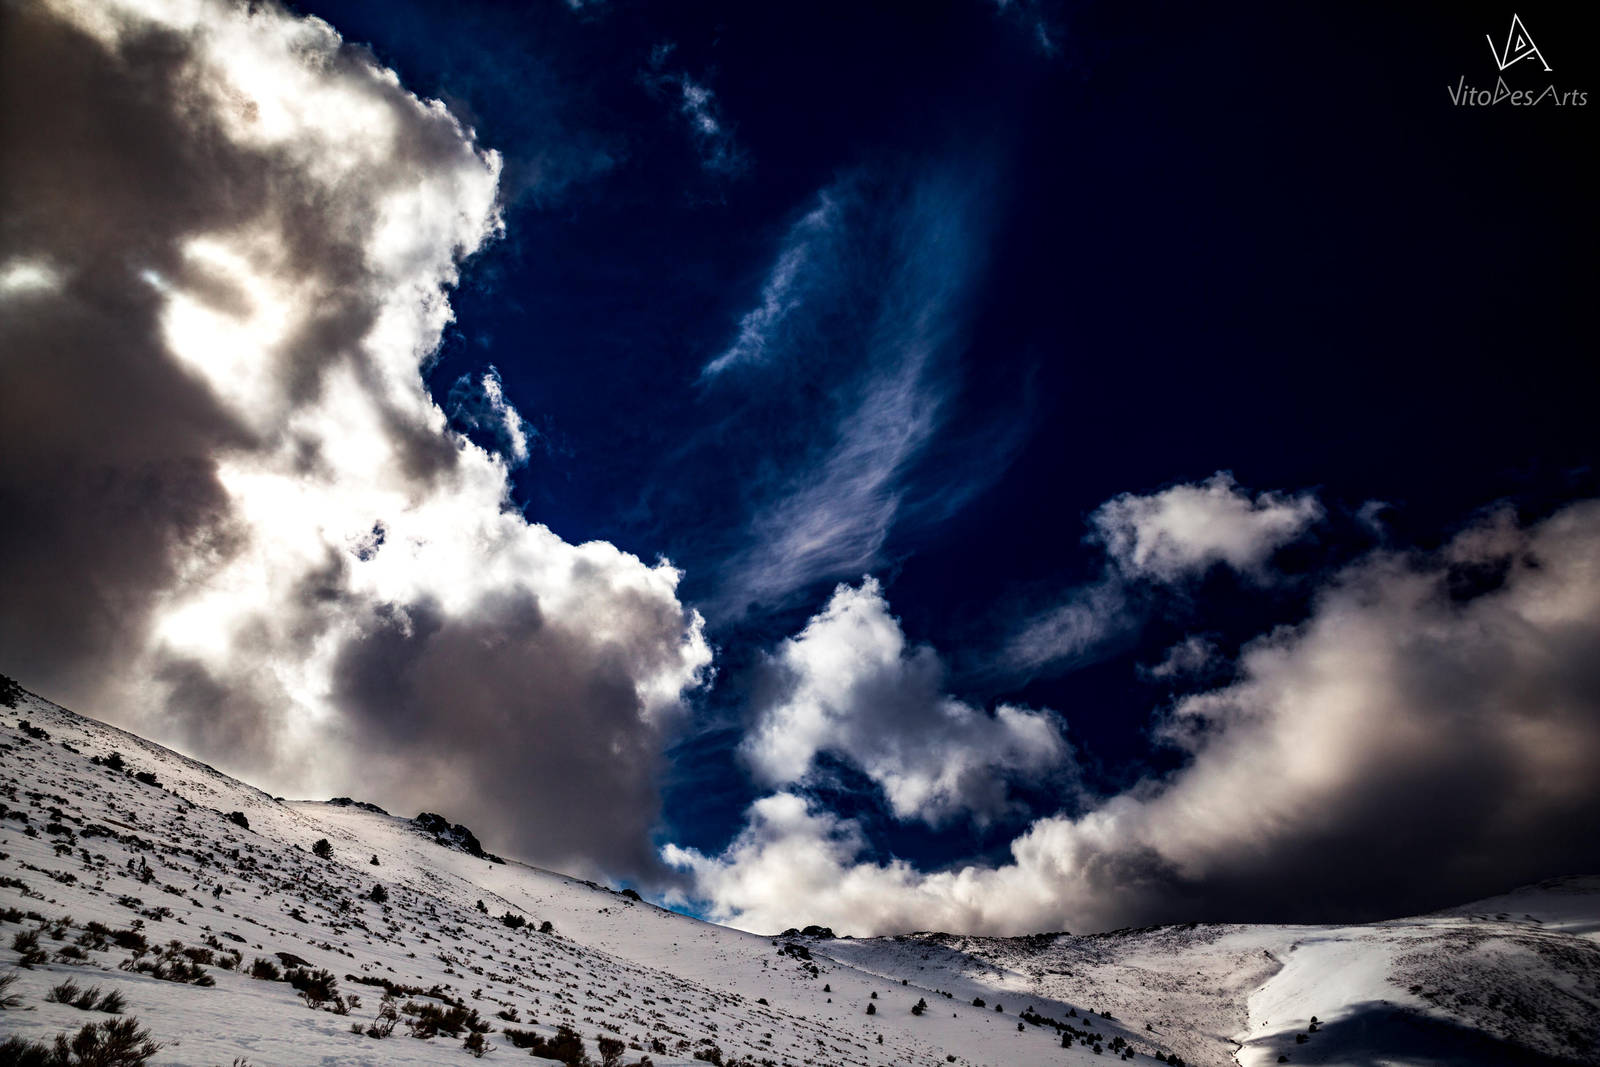 Mountainscape #2 by VitoDesArts